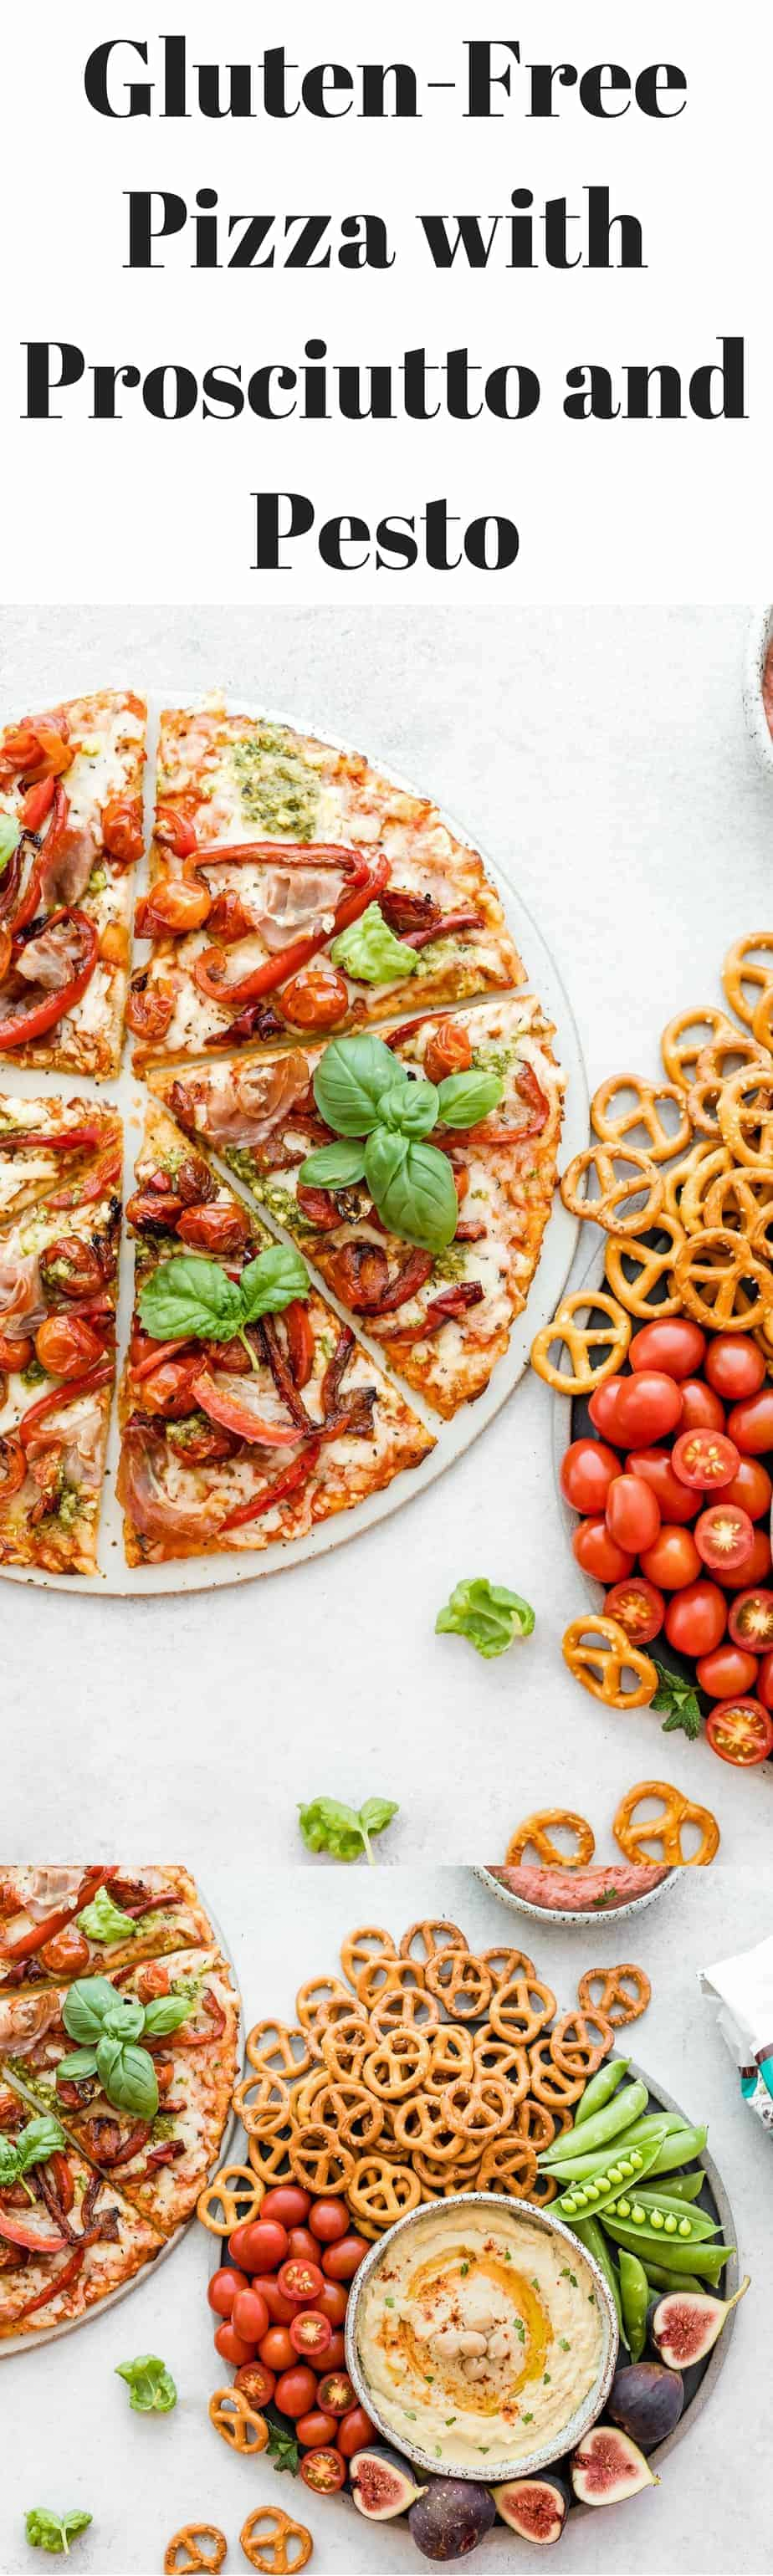 3 delicious homemade recipes that are perfect for those who are living a gluten-free lifestyle: Chickpeas Hummus, Beet Hummus and a Gluten-Free Pizza with Prosciutto and Pesto.